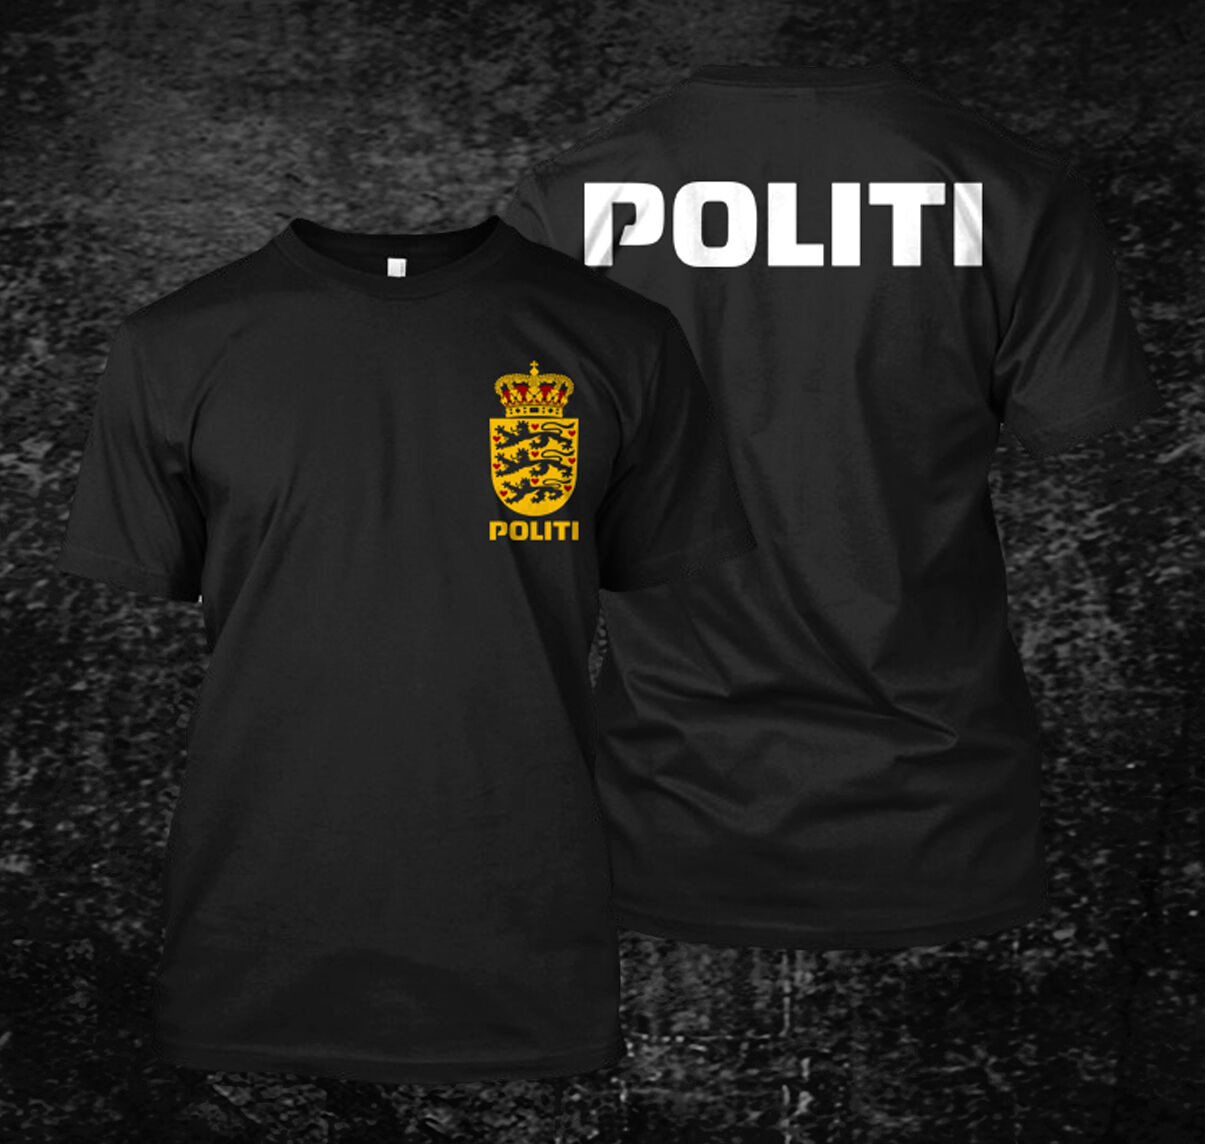 2019 Funny Dansk Danish Denmark Politi Police - Custom Men'S Black T-Shirt Tee Double Side Unisex Tee